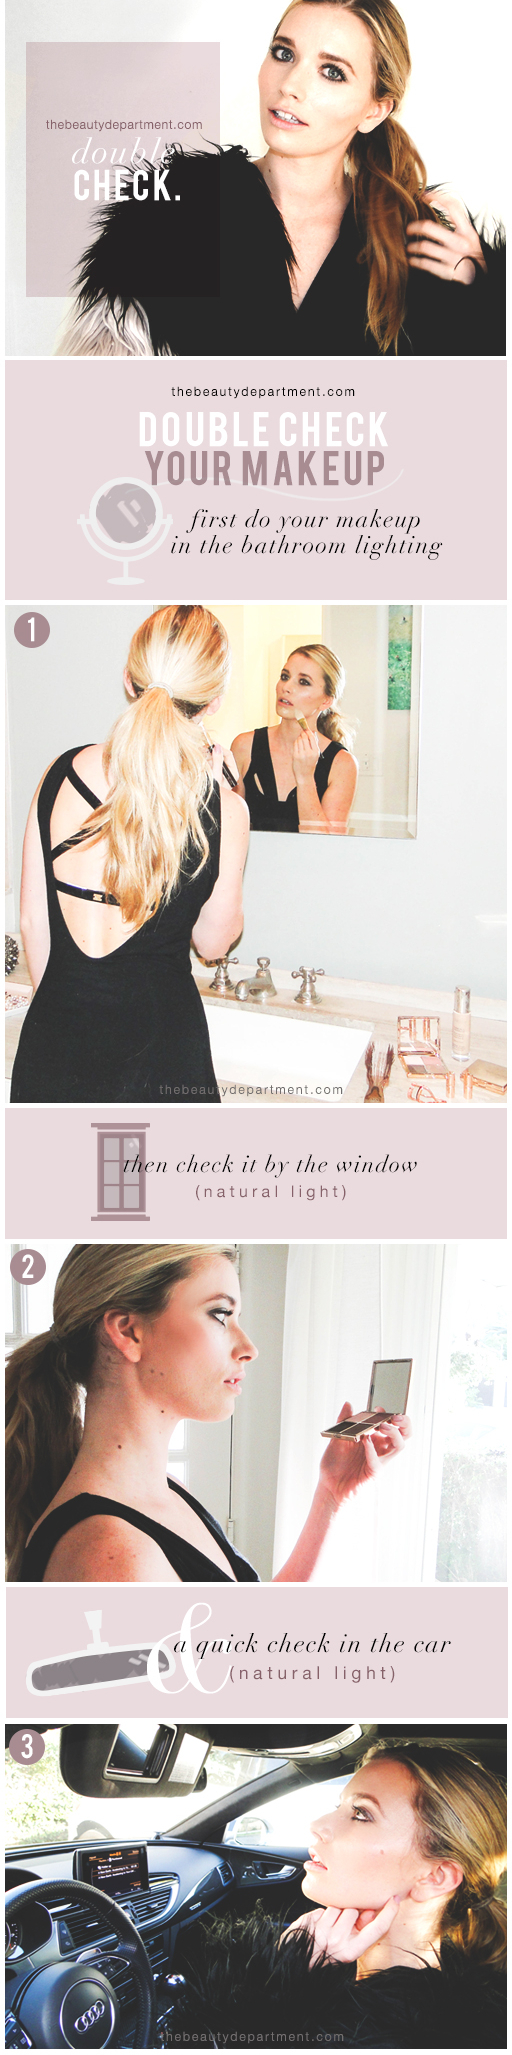 The Beauty Department: Your Daily Dose of Pretty. - BEST MAKEUP ADVICE